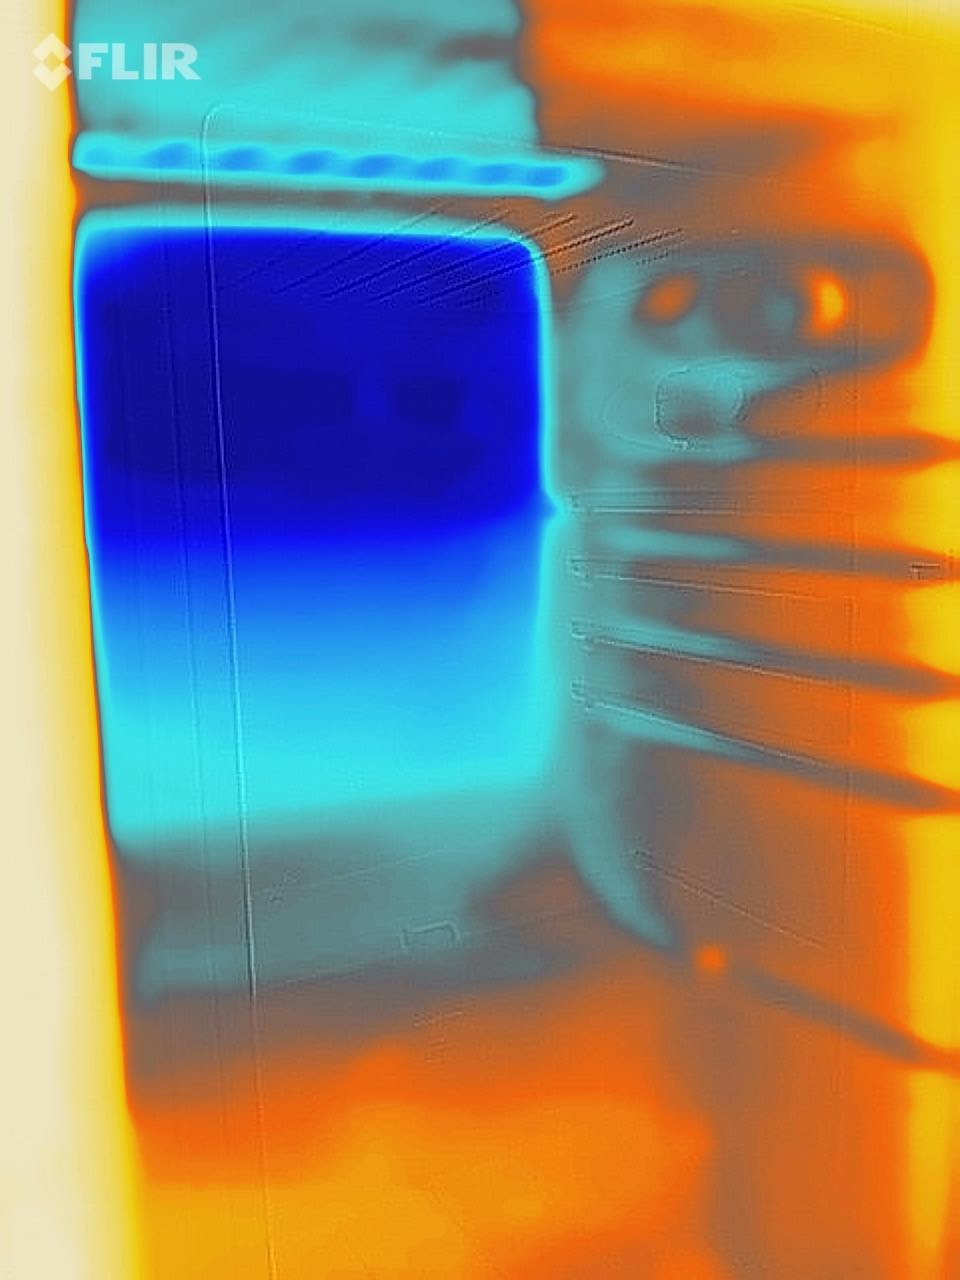 Thermal image of the inside of fridge showing hot spots